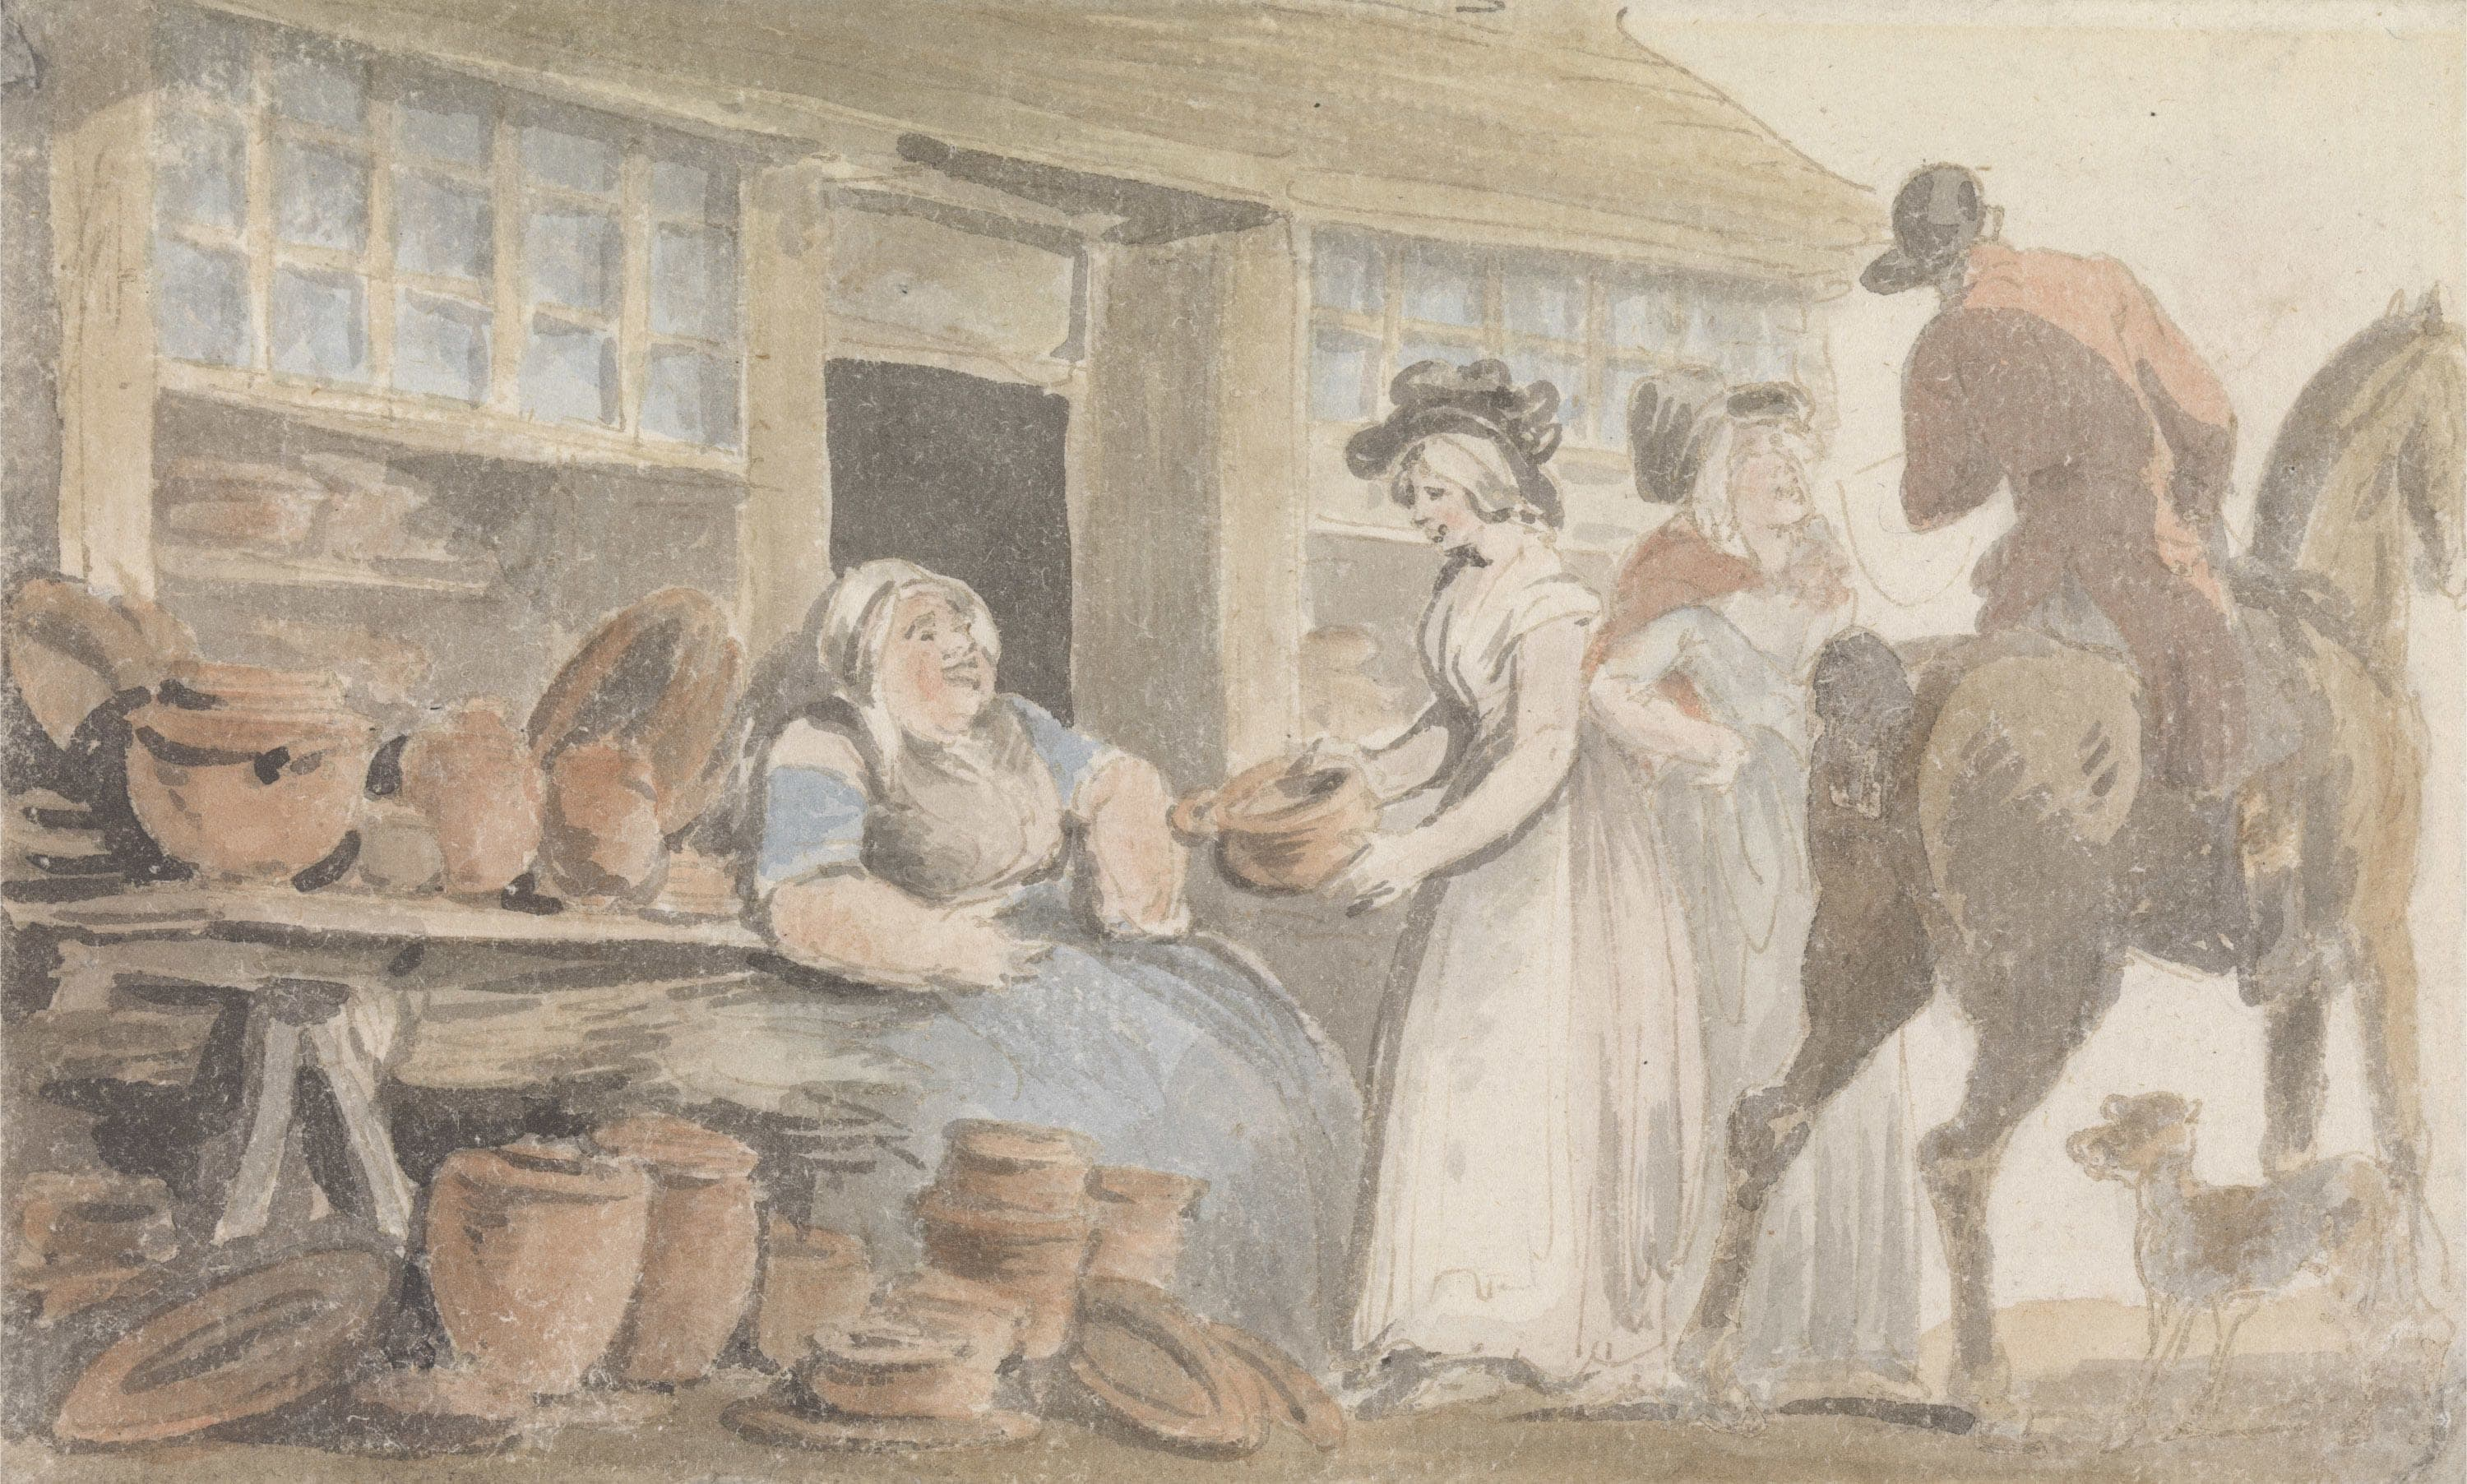 Watercolour painting. A seated woman sells ceramic pots to a well dressed woman outside a small wooden building. On the right, a woman speaks to a man on horseback with a dog.